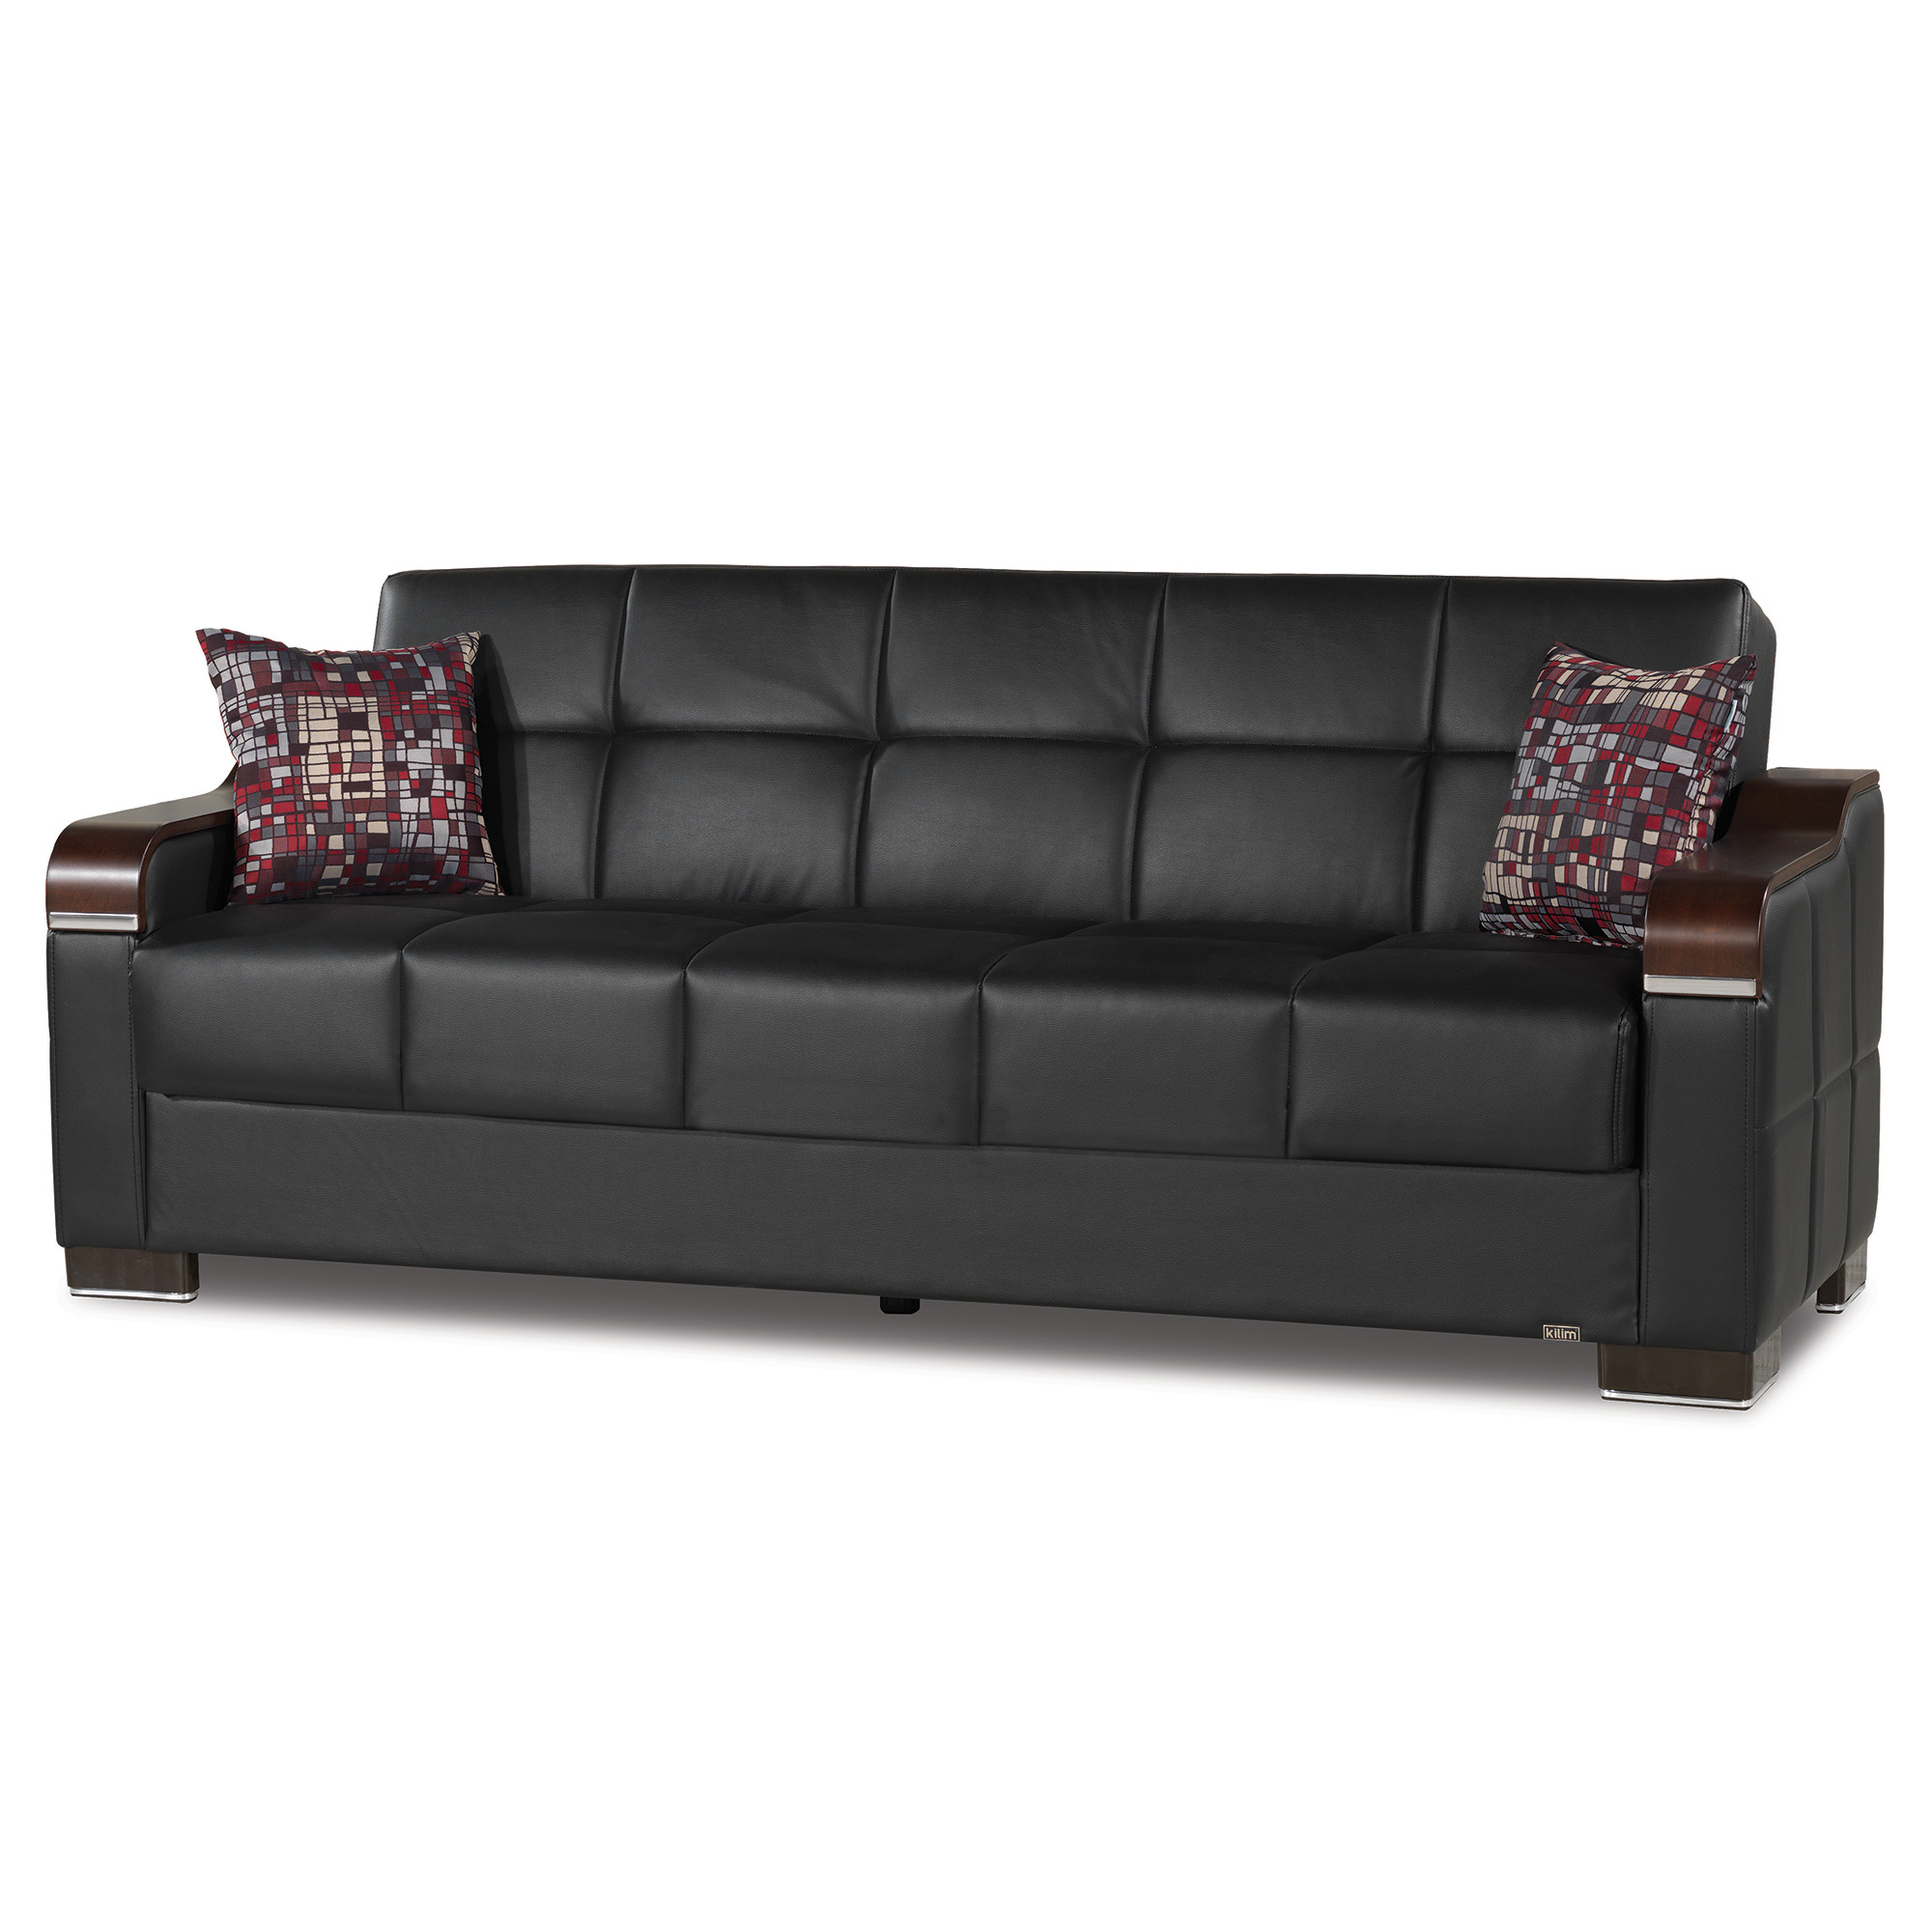 Uptown Leather Wooden Accent Arm Sleeper Sofa Bed With For Hartford Storage Sectional Futon Sofas (View 2 of 15)